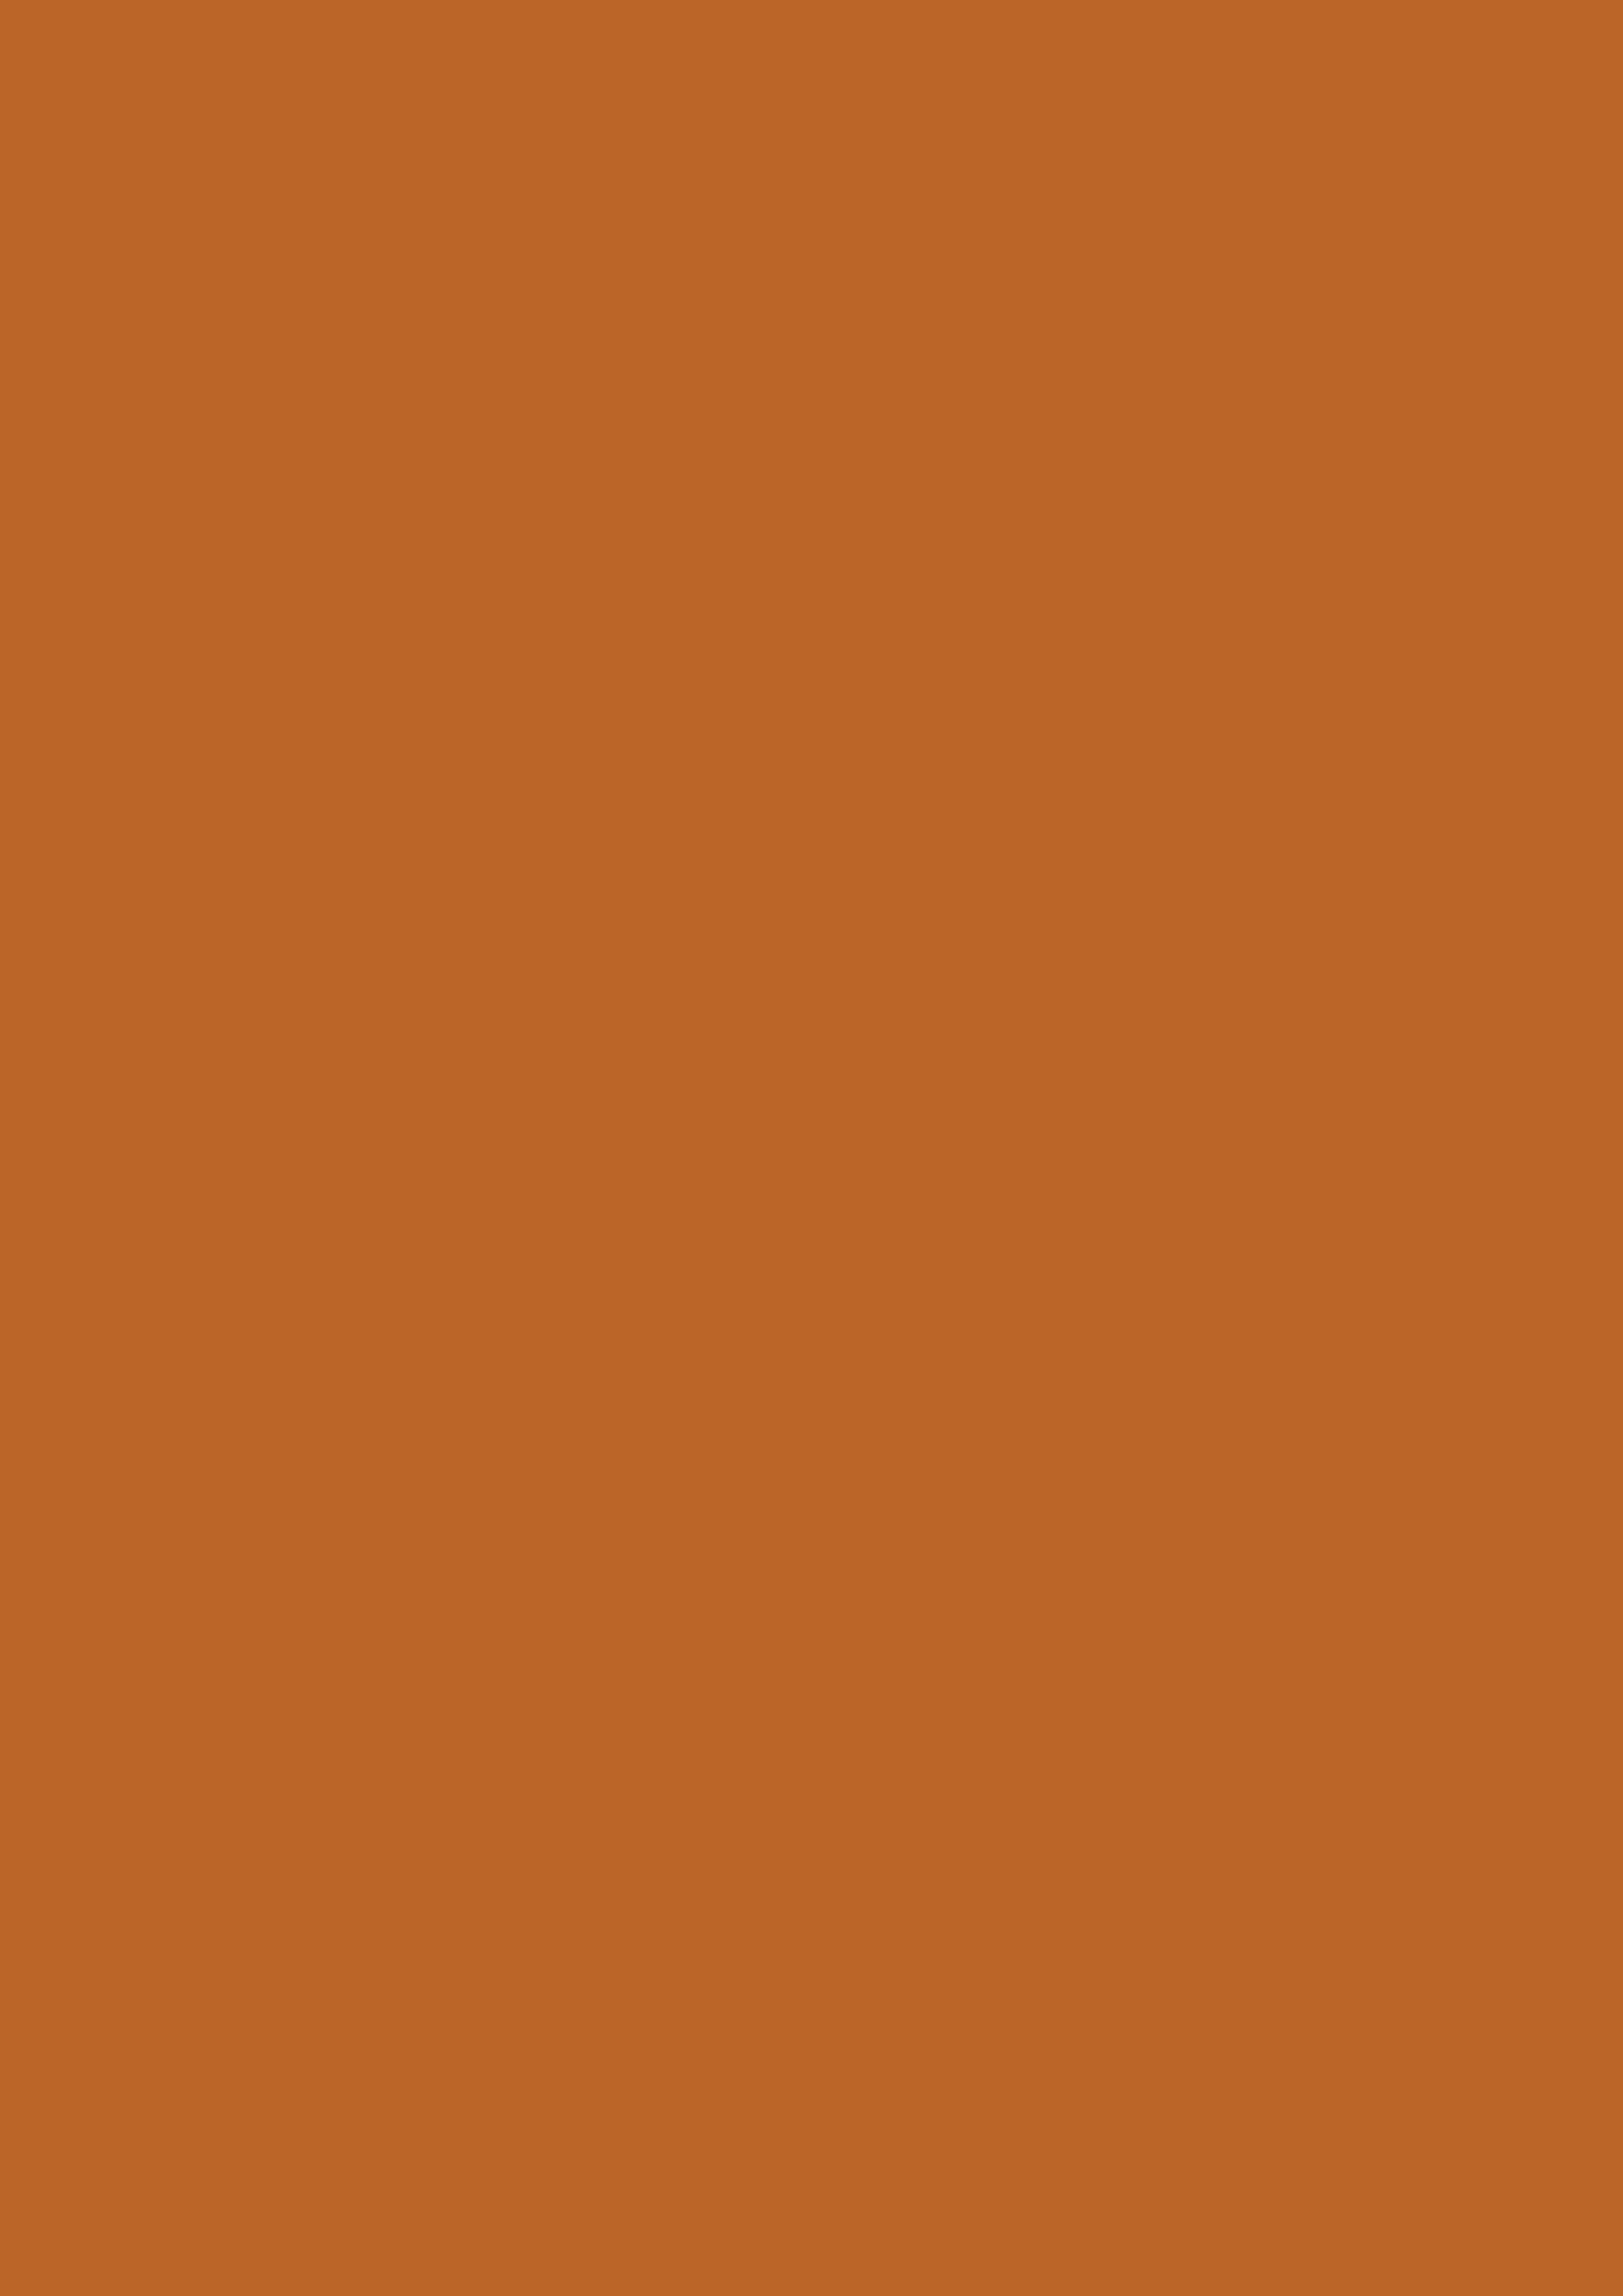 2480x3508 Ruddy Brown Solid Color Background